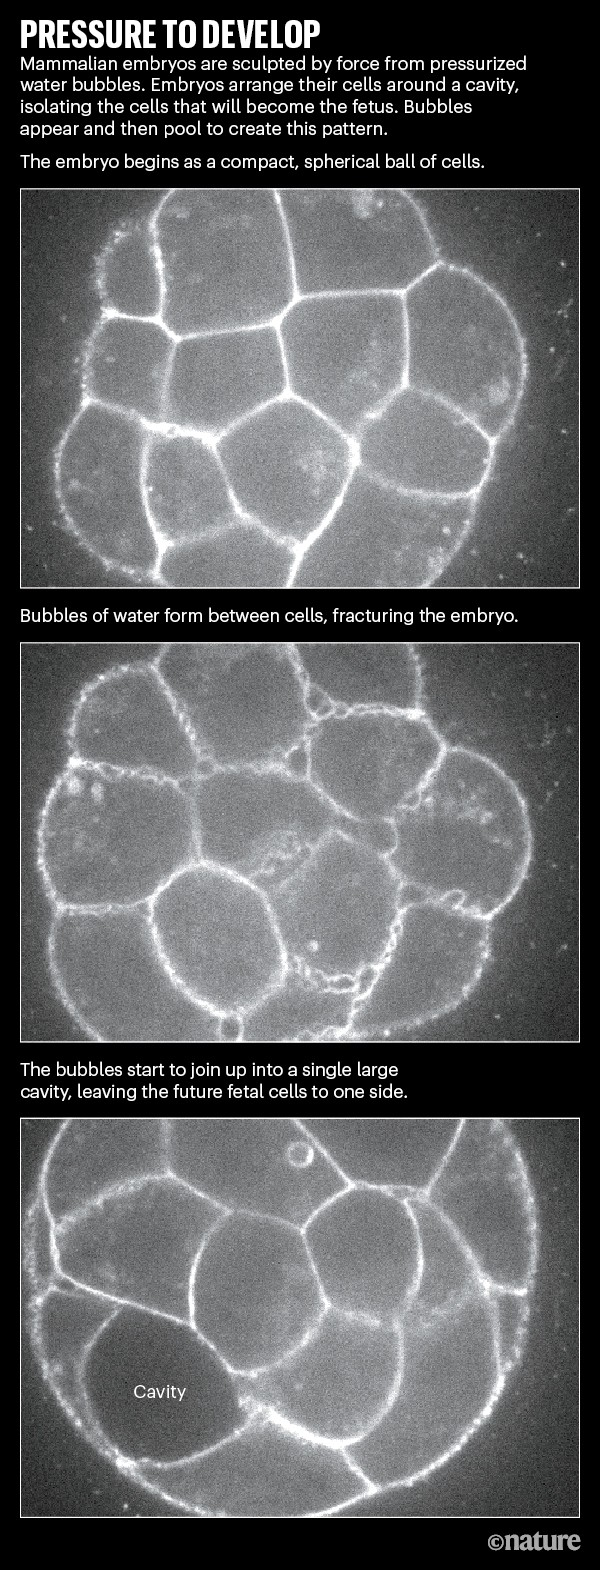 Pressure to develop. Series of images showing bubbles and then a cavity forming within a mammalian embryo.